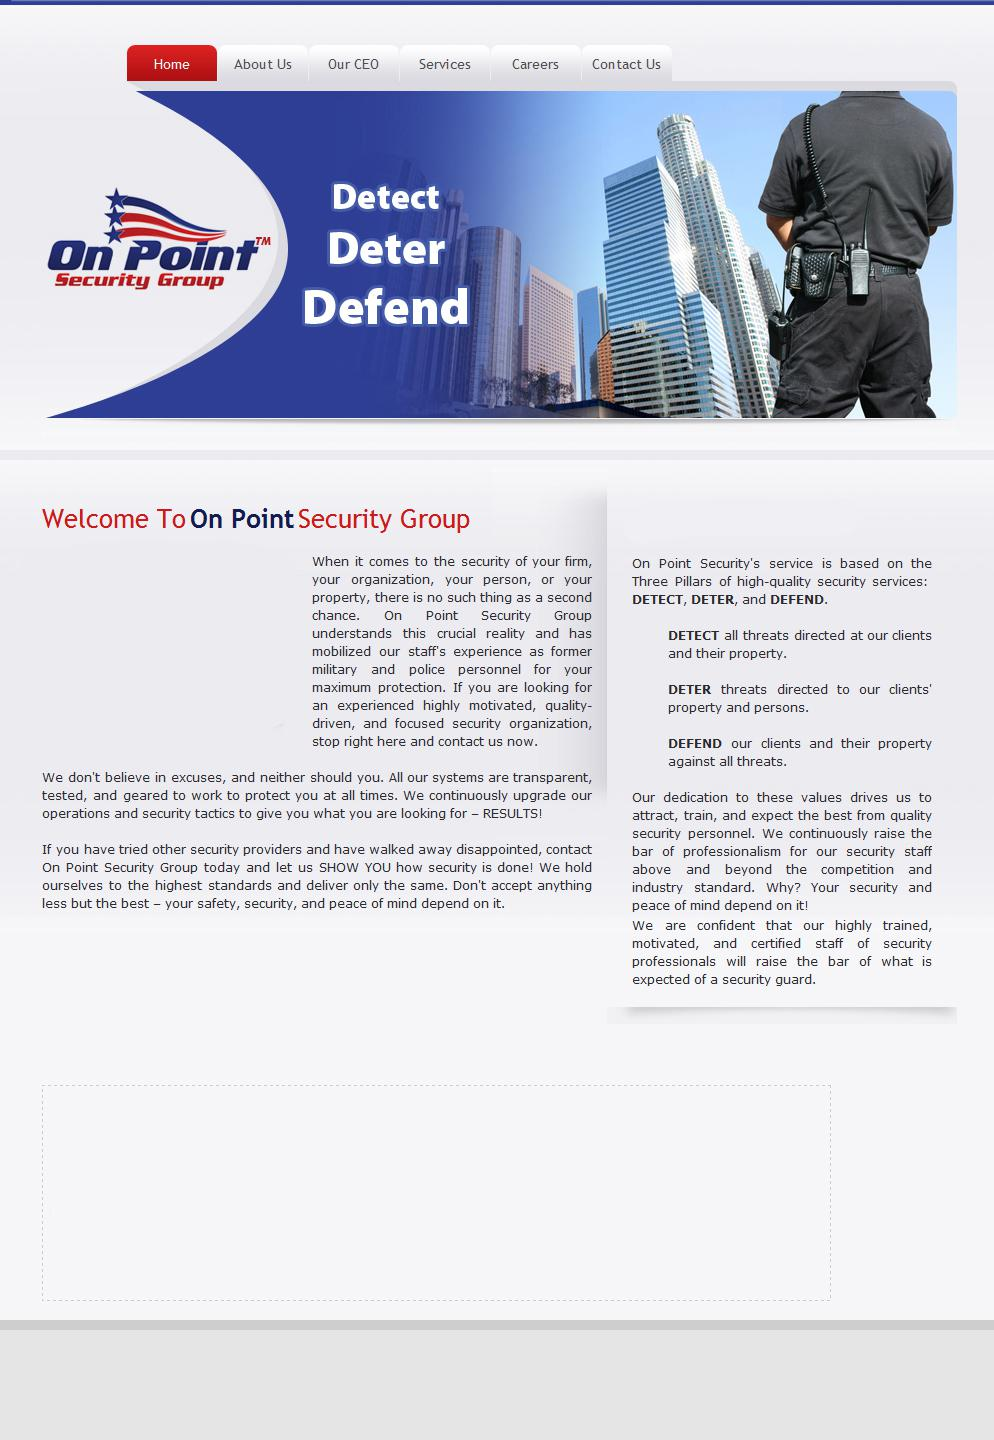 security guard company Des Moines IA